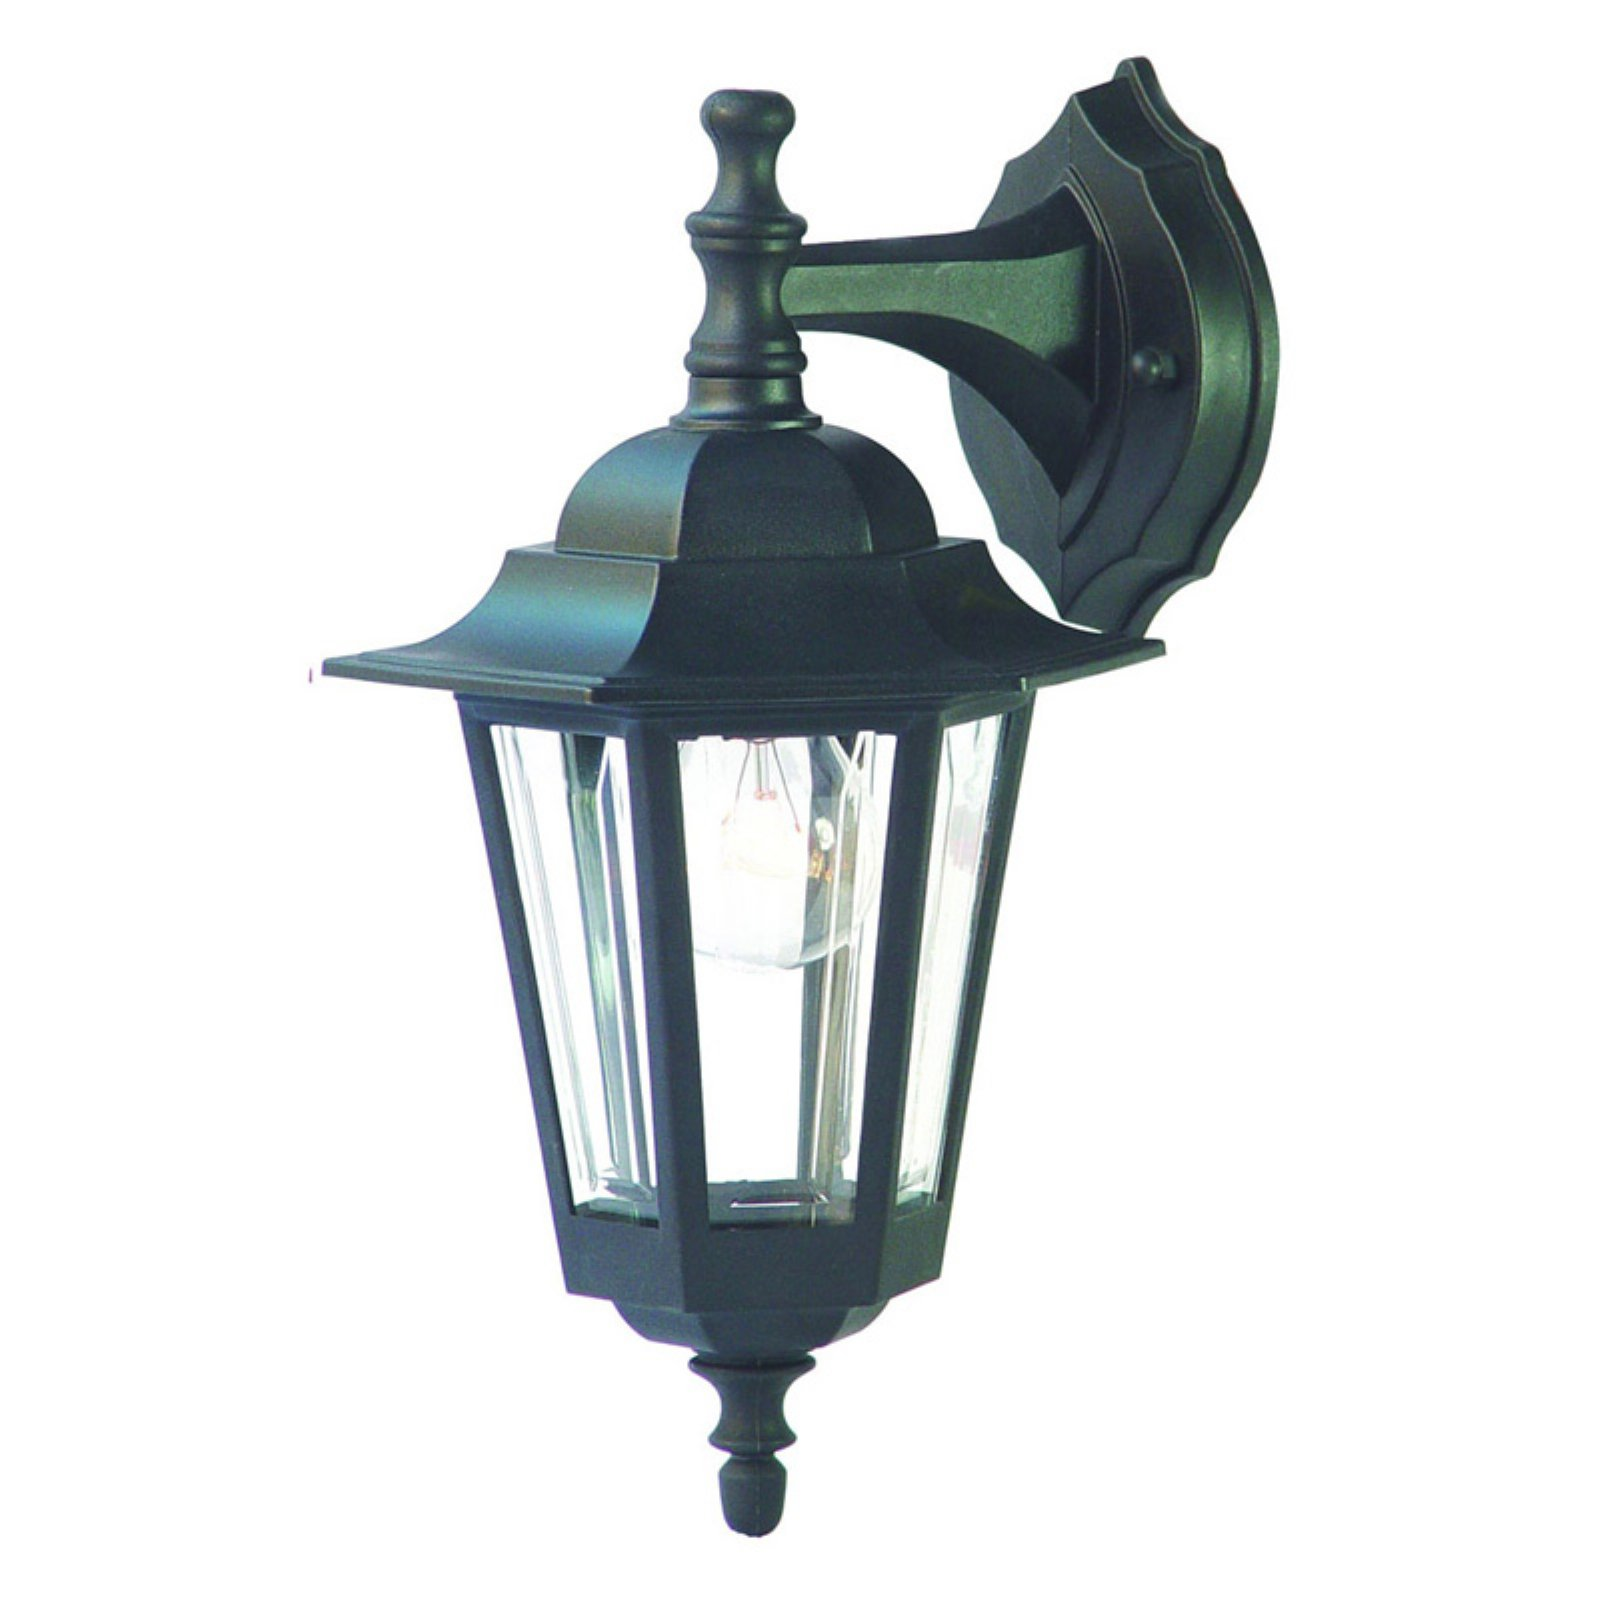 Acclaim Lighting Tidewater 1 Light Outdoor Wall Mount Light Fixture